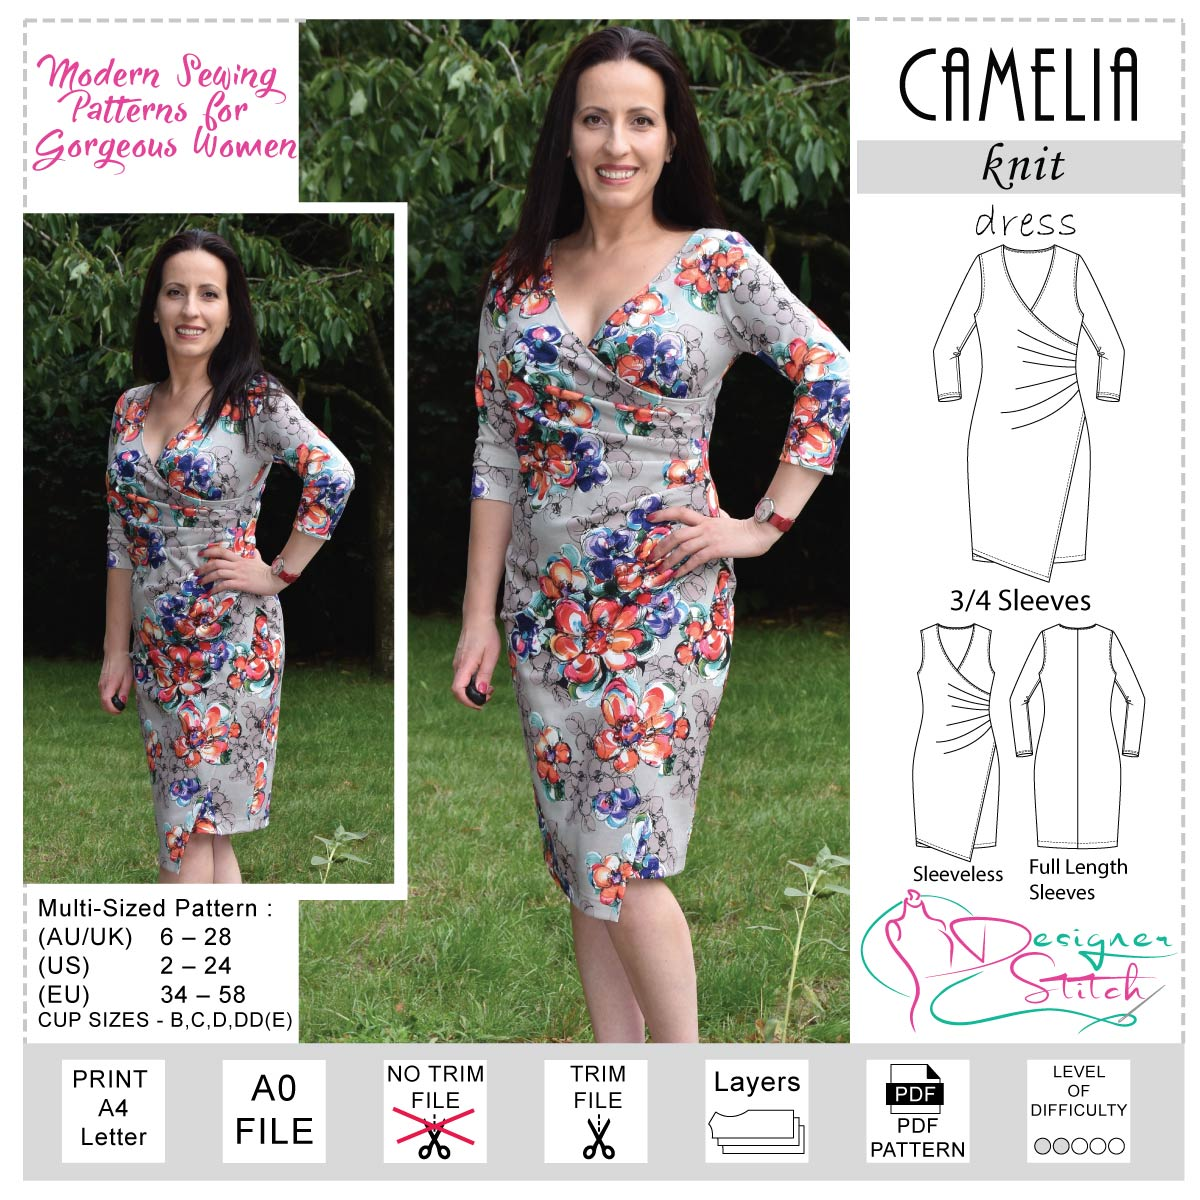 Camelia Draped Jersey Dress Sewing Pattern Pdf Designer Stitch